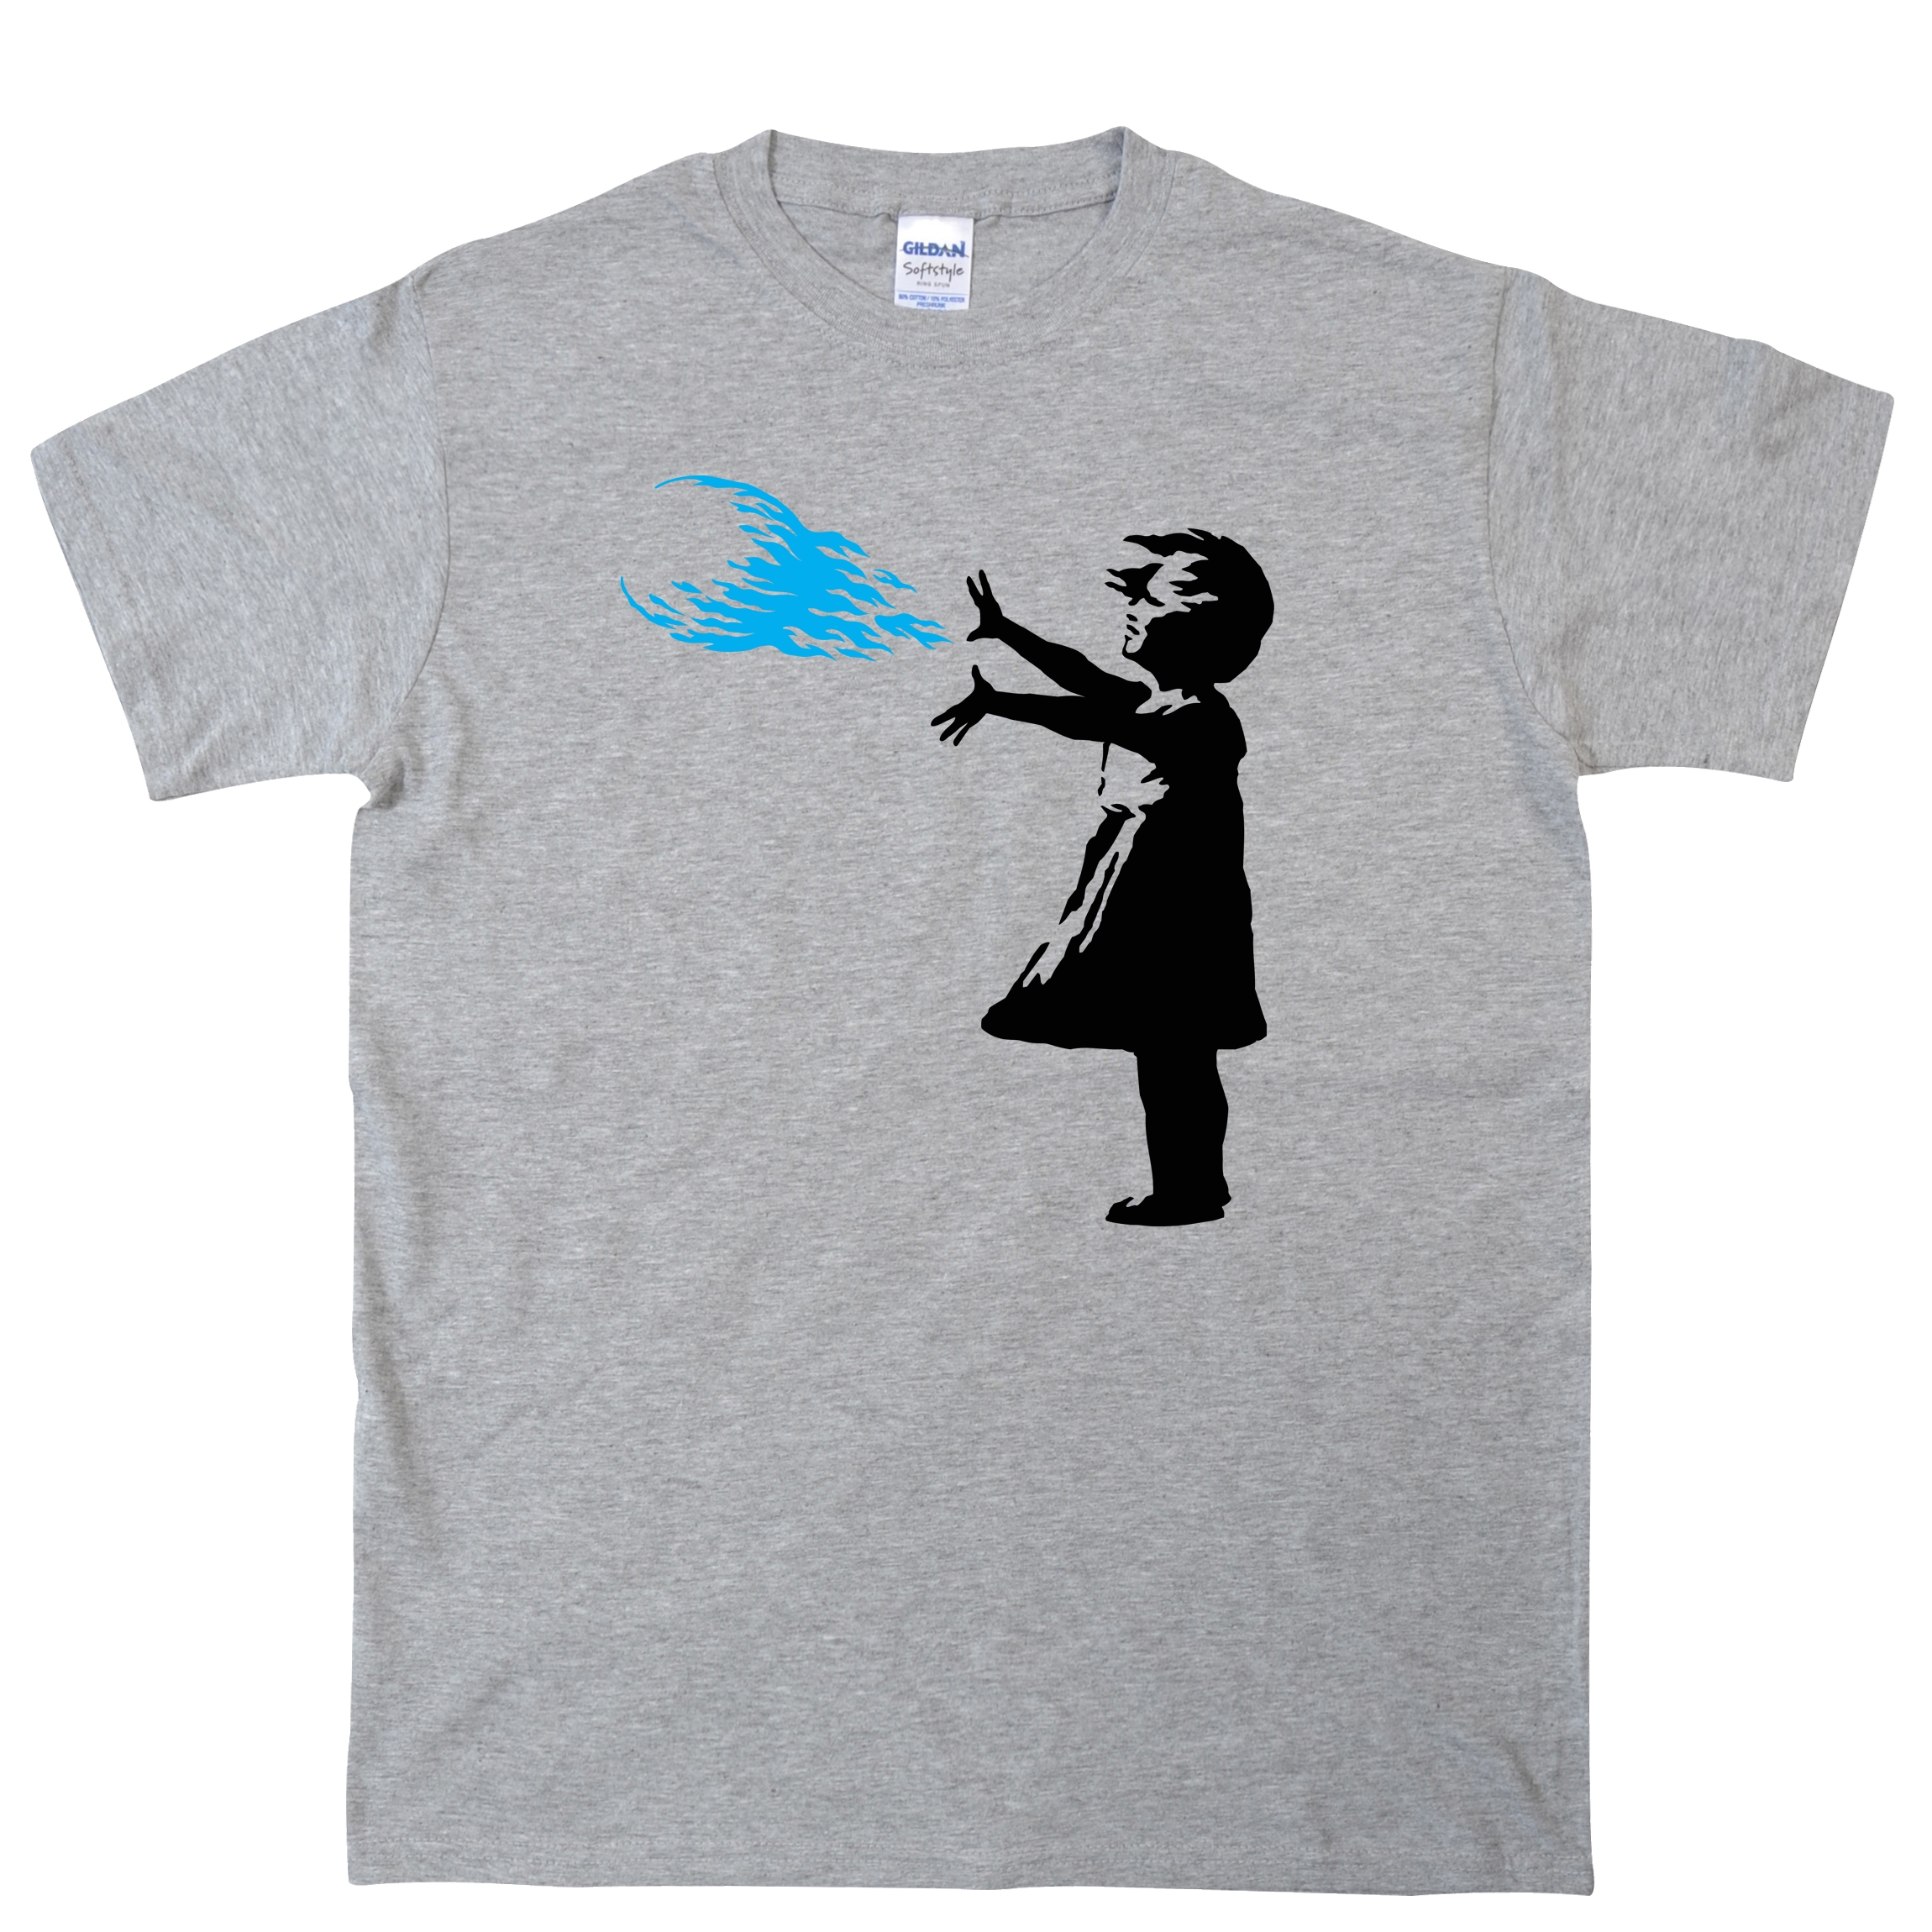 Photograph: Hadoken Girl T-Shirt